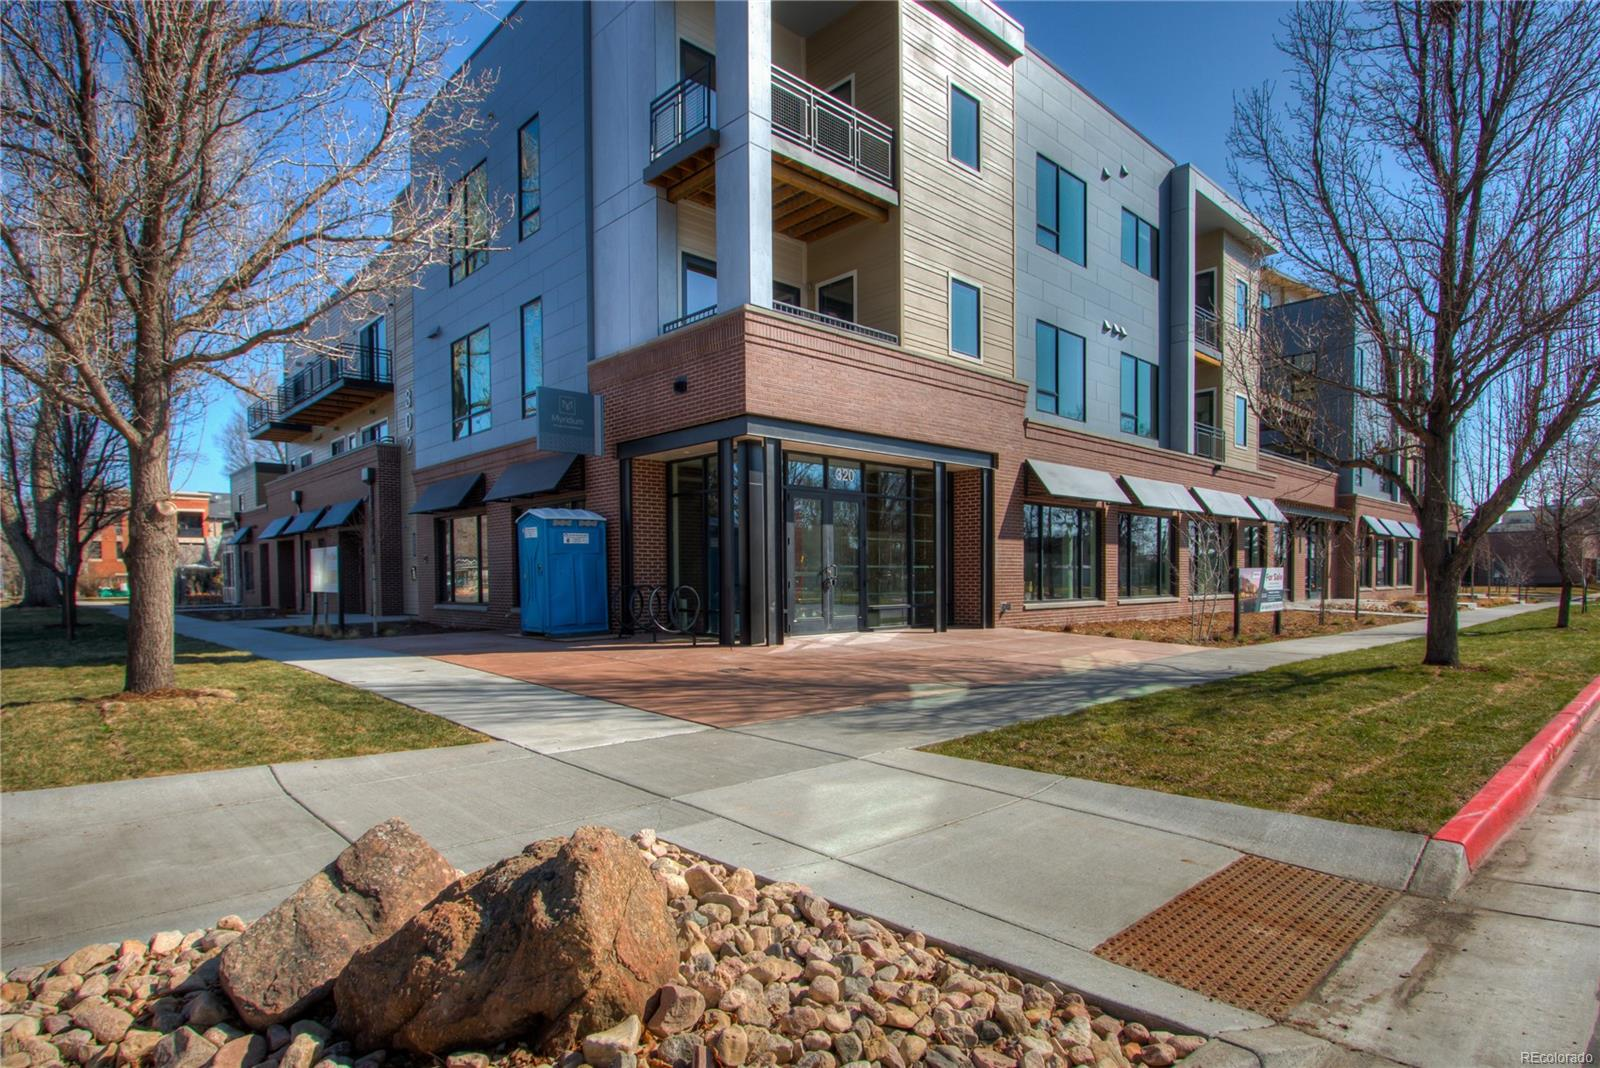 302 Meldrum Street #313, Fort Collins, CO 80521 - Fort Collins, CO real estate listing